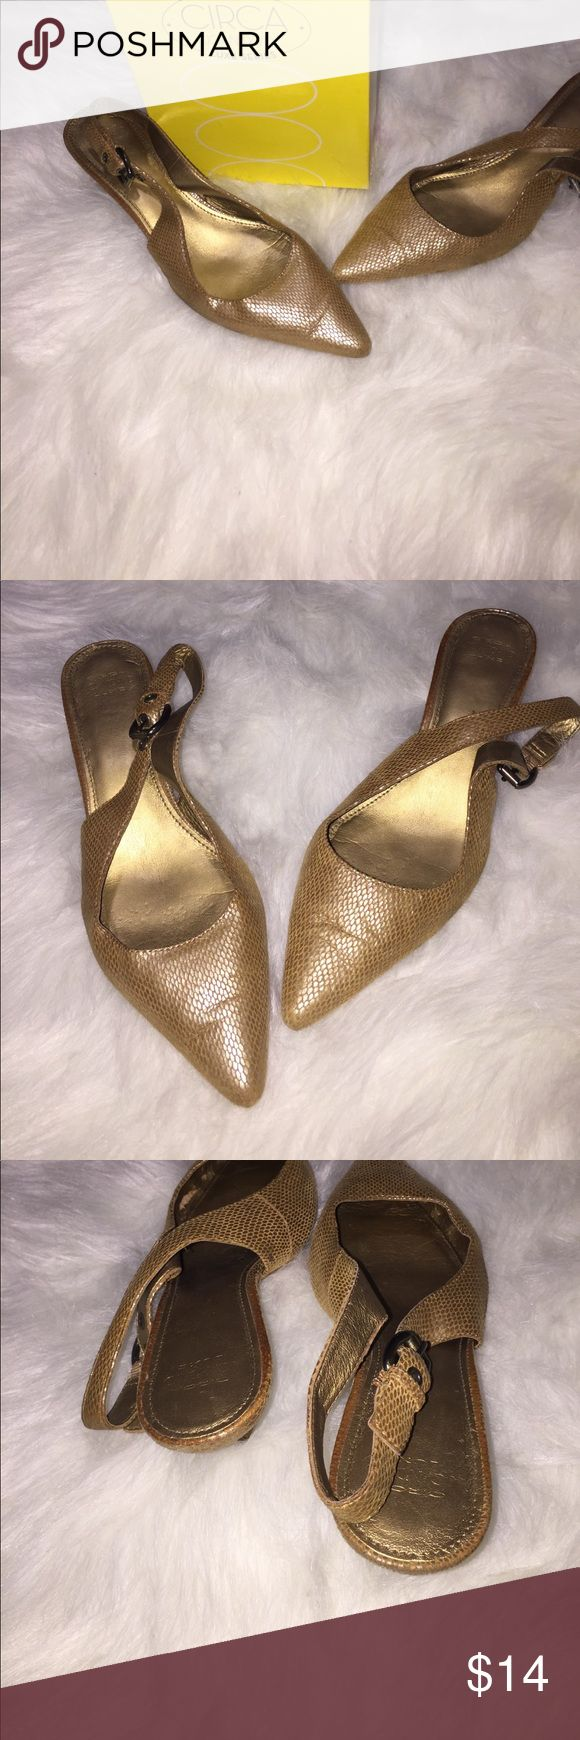 Circa Joan & David pointed toe shoes 3 inch gold Circa Joan & David pointed toe shoes with adjustable strap that cuffs behind feet. Small scuffs on front, see pics. Circa Joan & David Shoes Heels